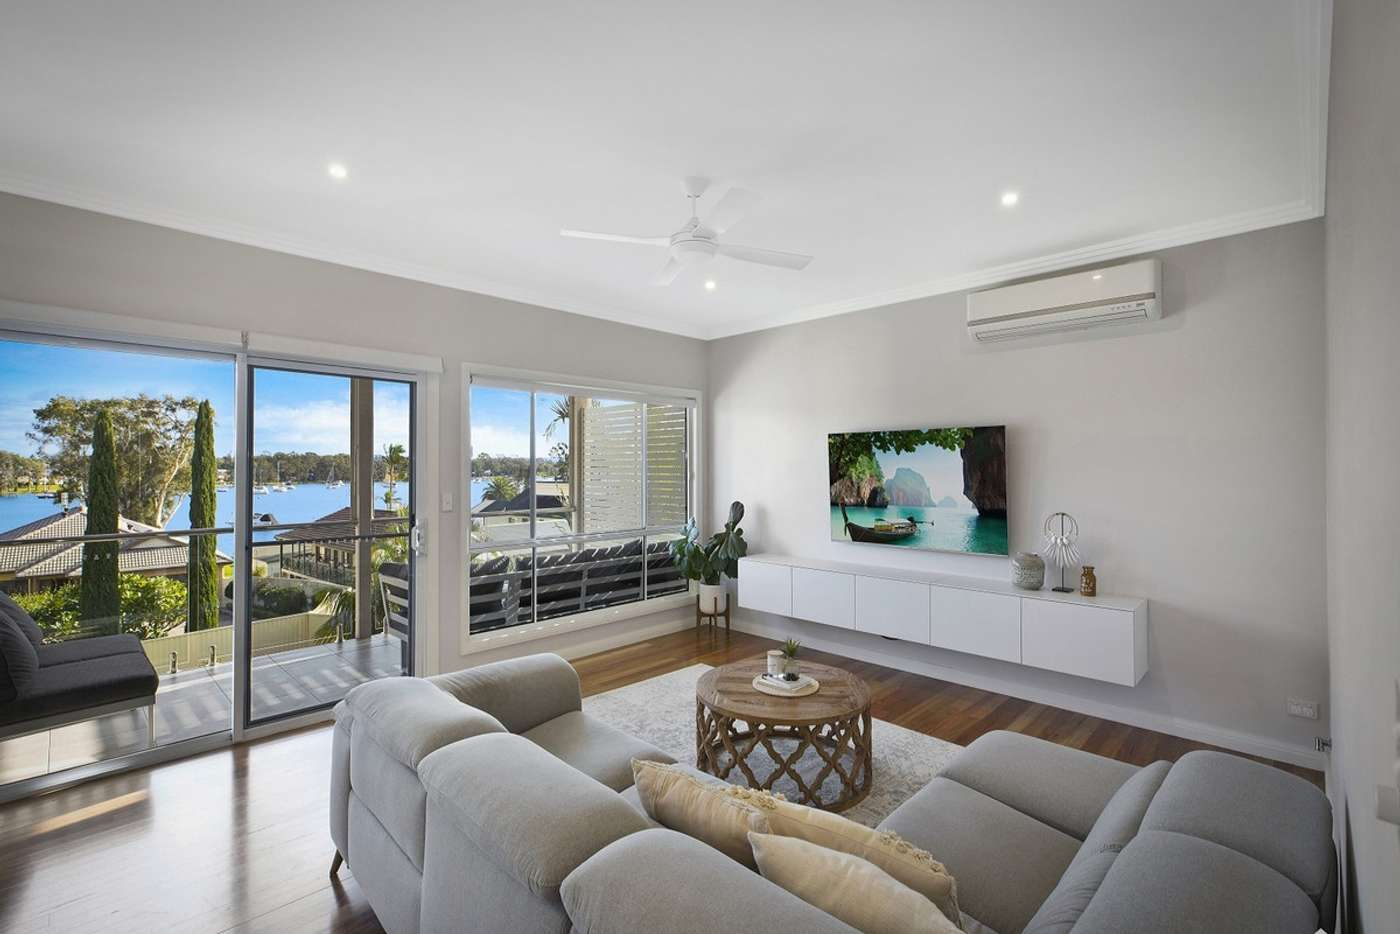 Fifth view of Homely house listing, 40A Gordon Avenue, Summerland Point NSW 2259